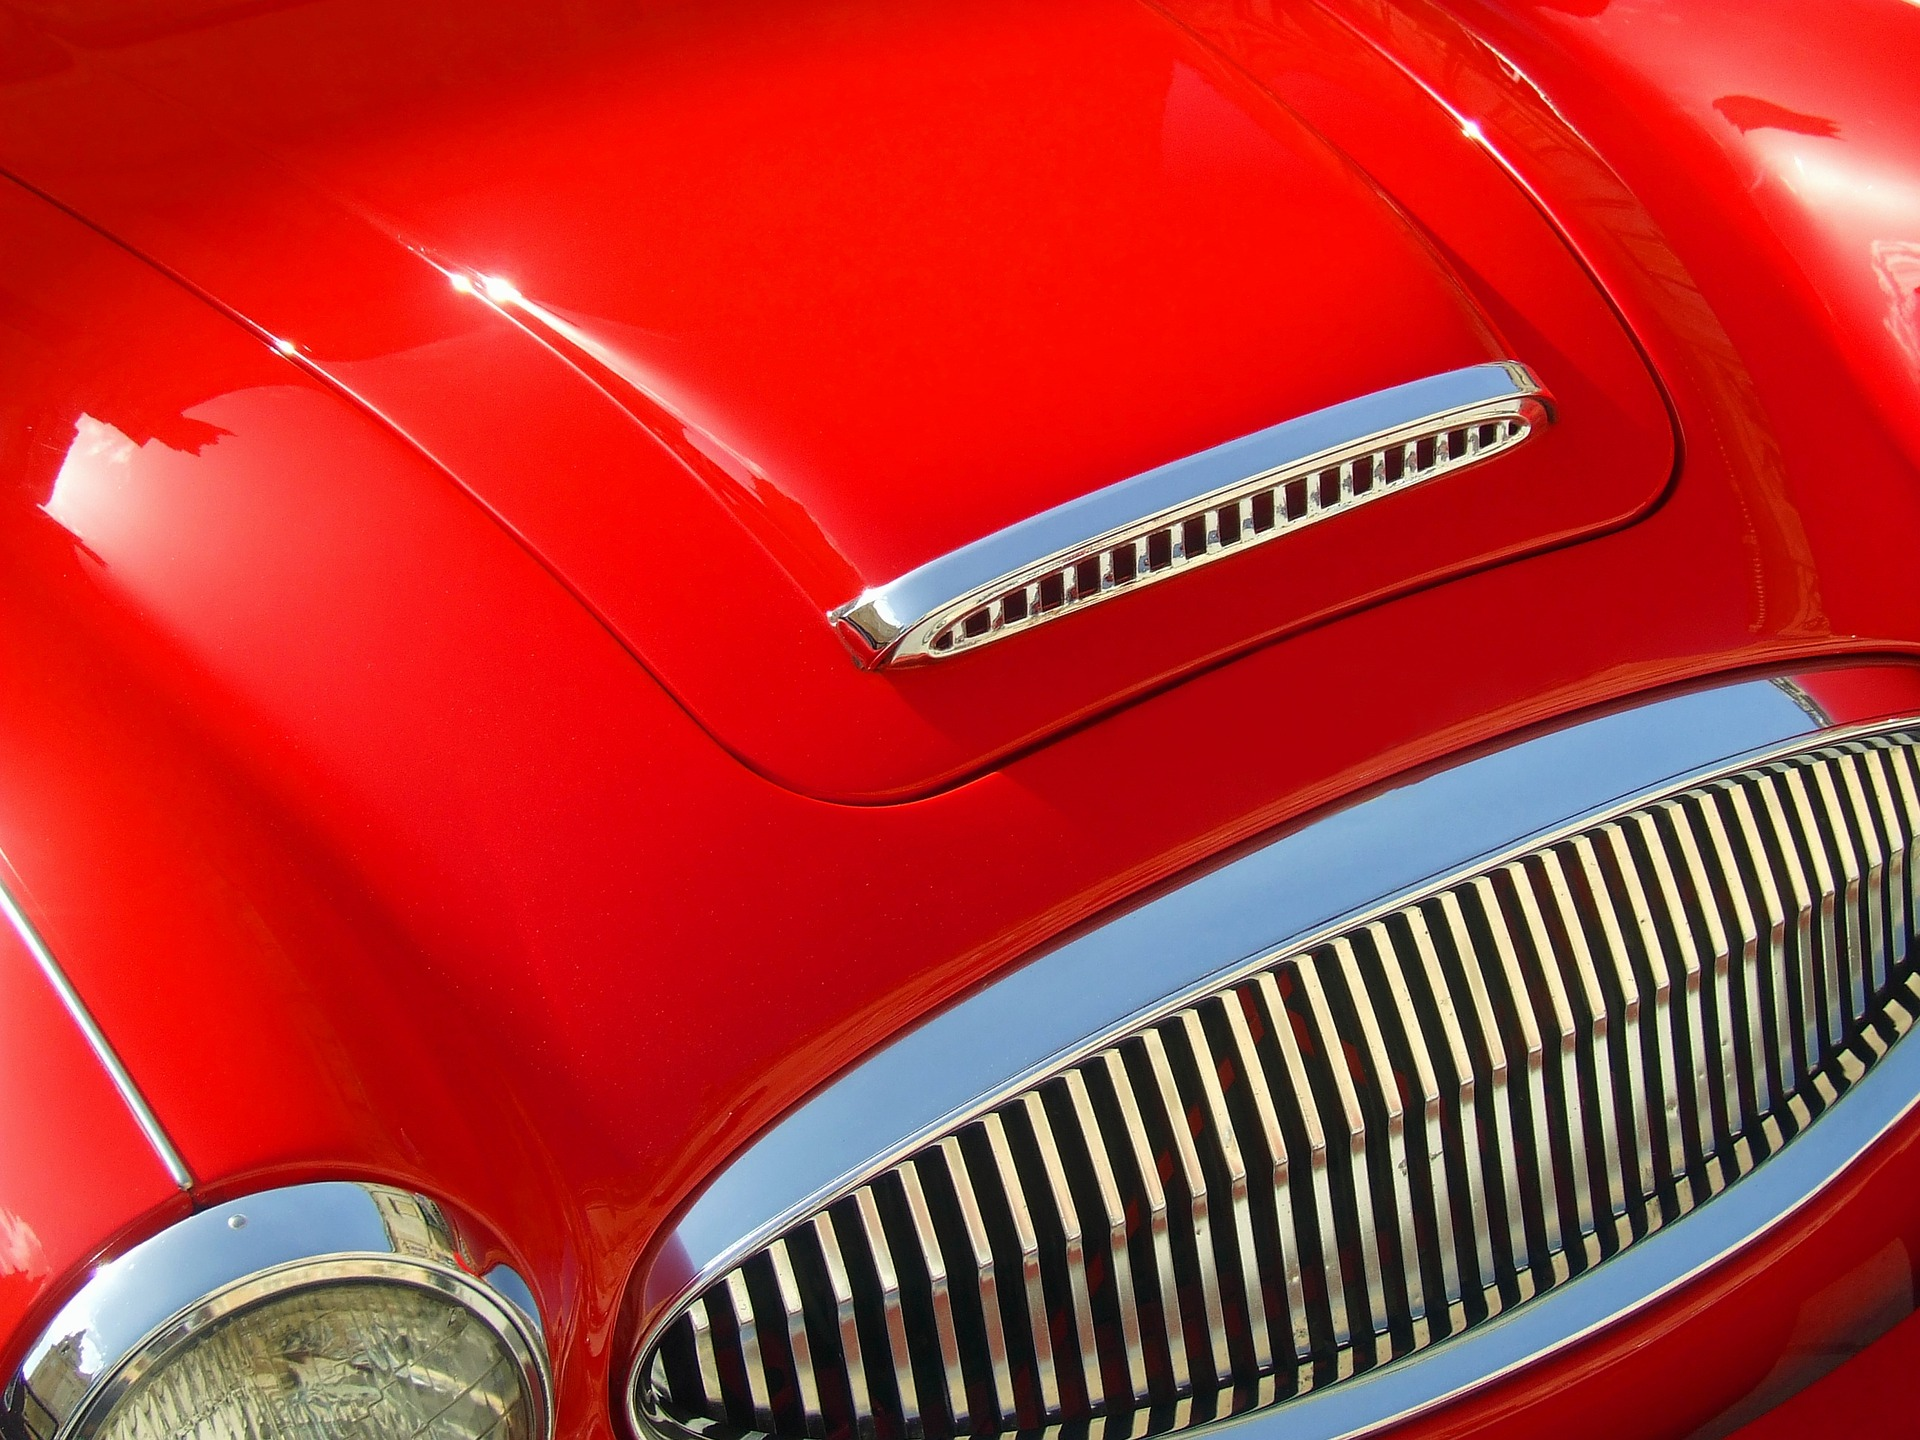 red-car-1049884_1920